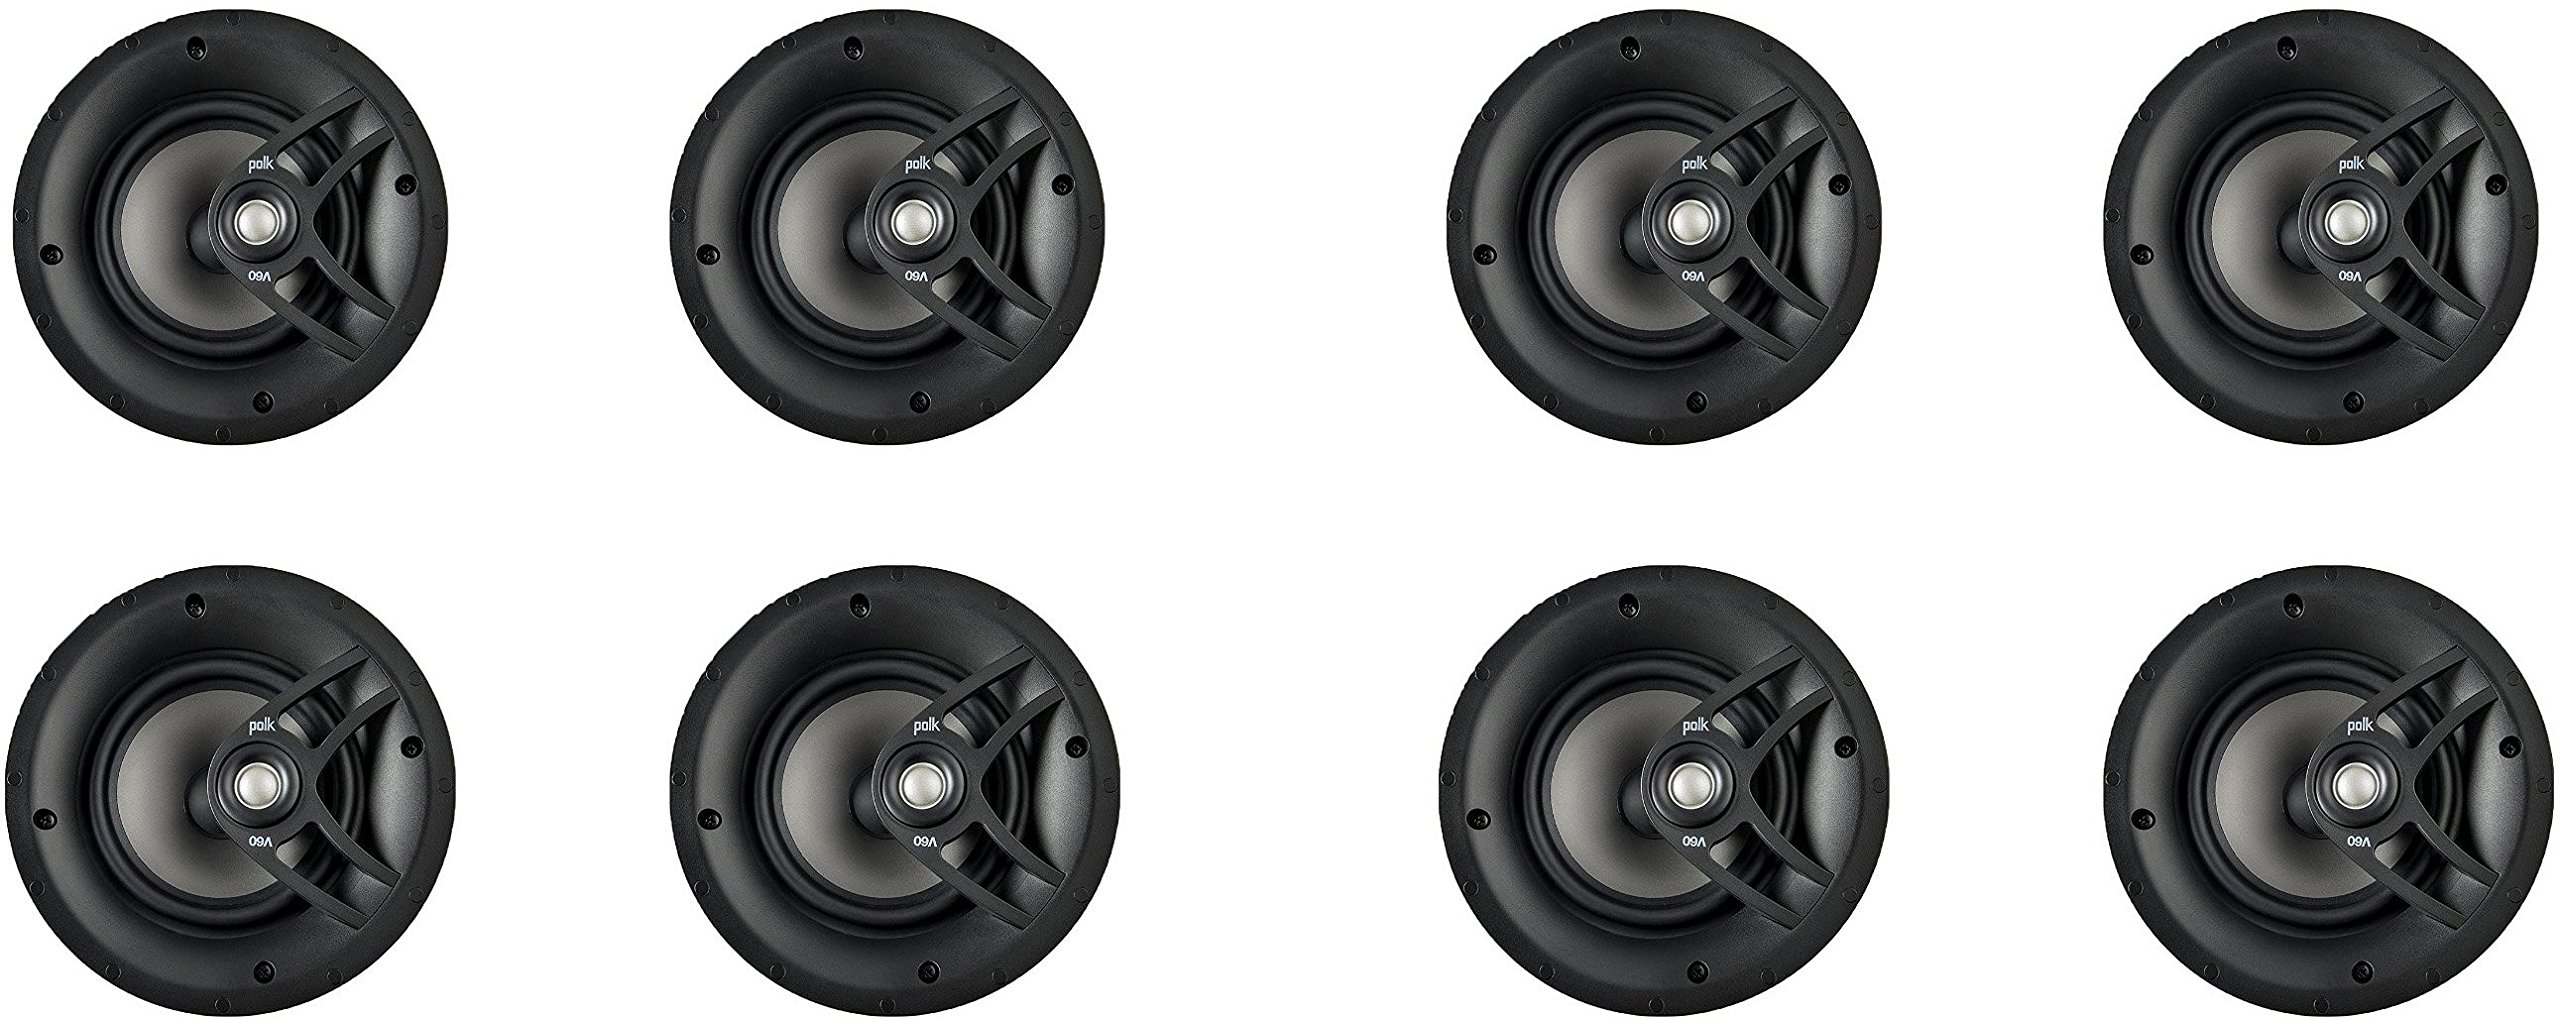 Polk Audio V60 High Performance Vanishing In-Ceiling Speakers (8 Pack) … by Polk Audio